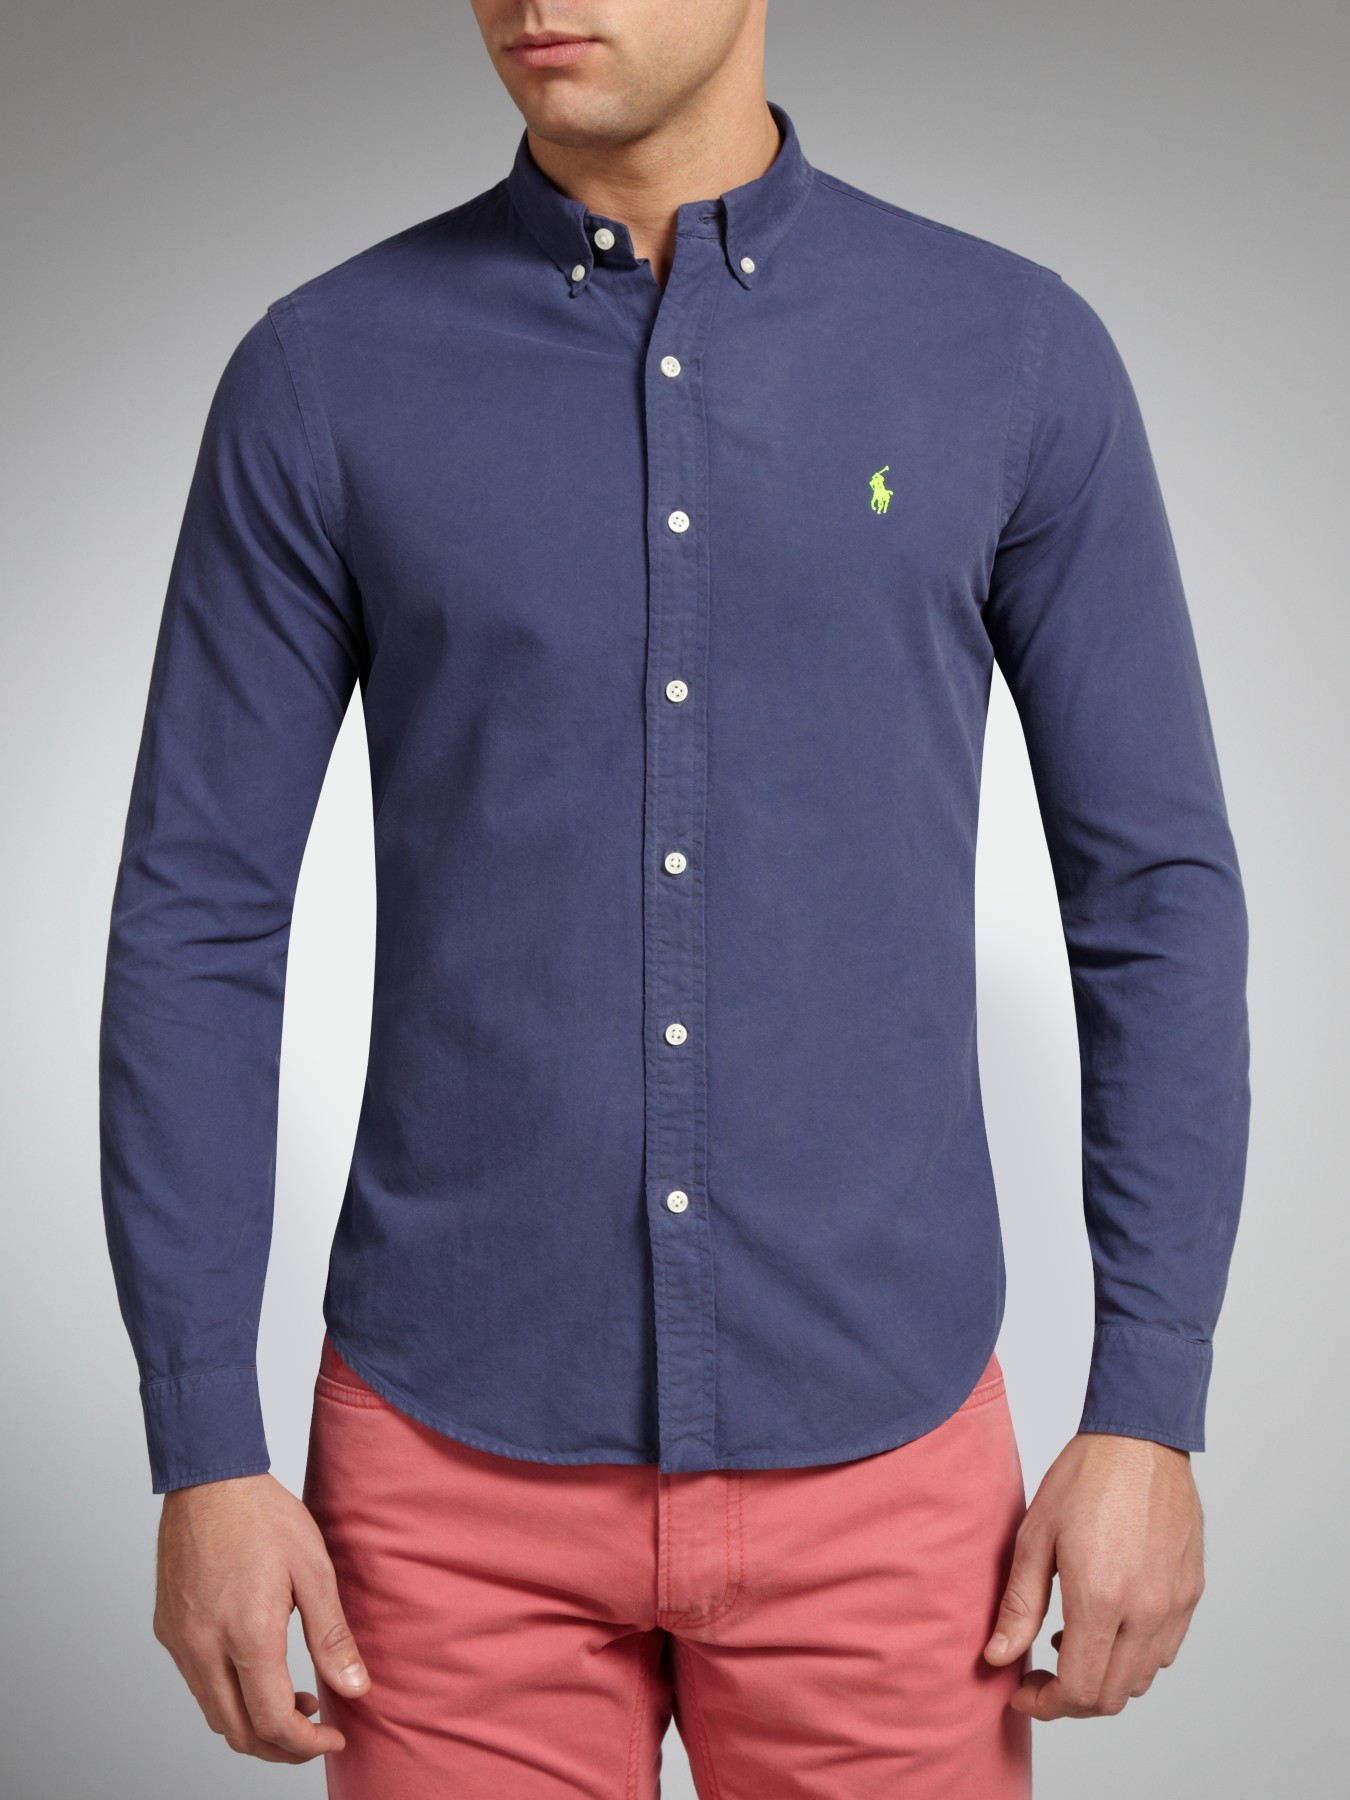 a30163f3c Polo Ralph Lauren Slim Fit Plain Long Sleeve Shirt in Blue for Men ...